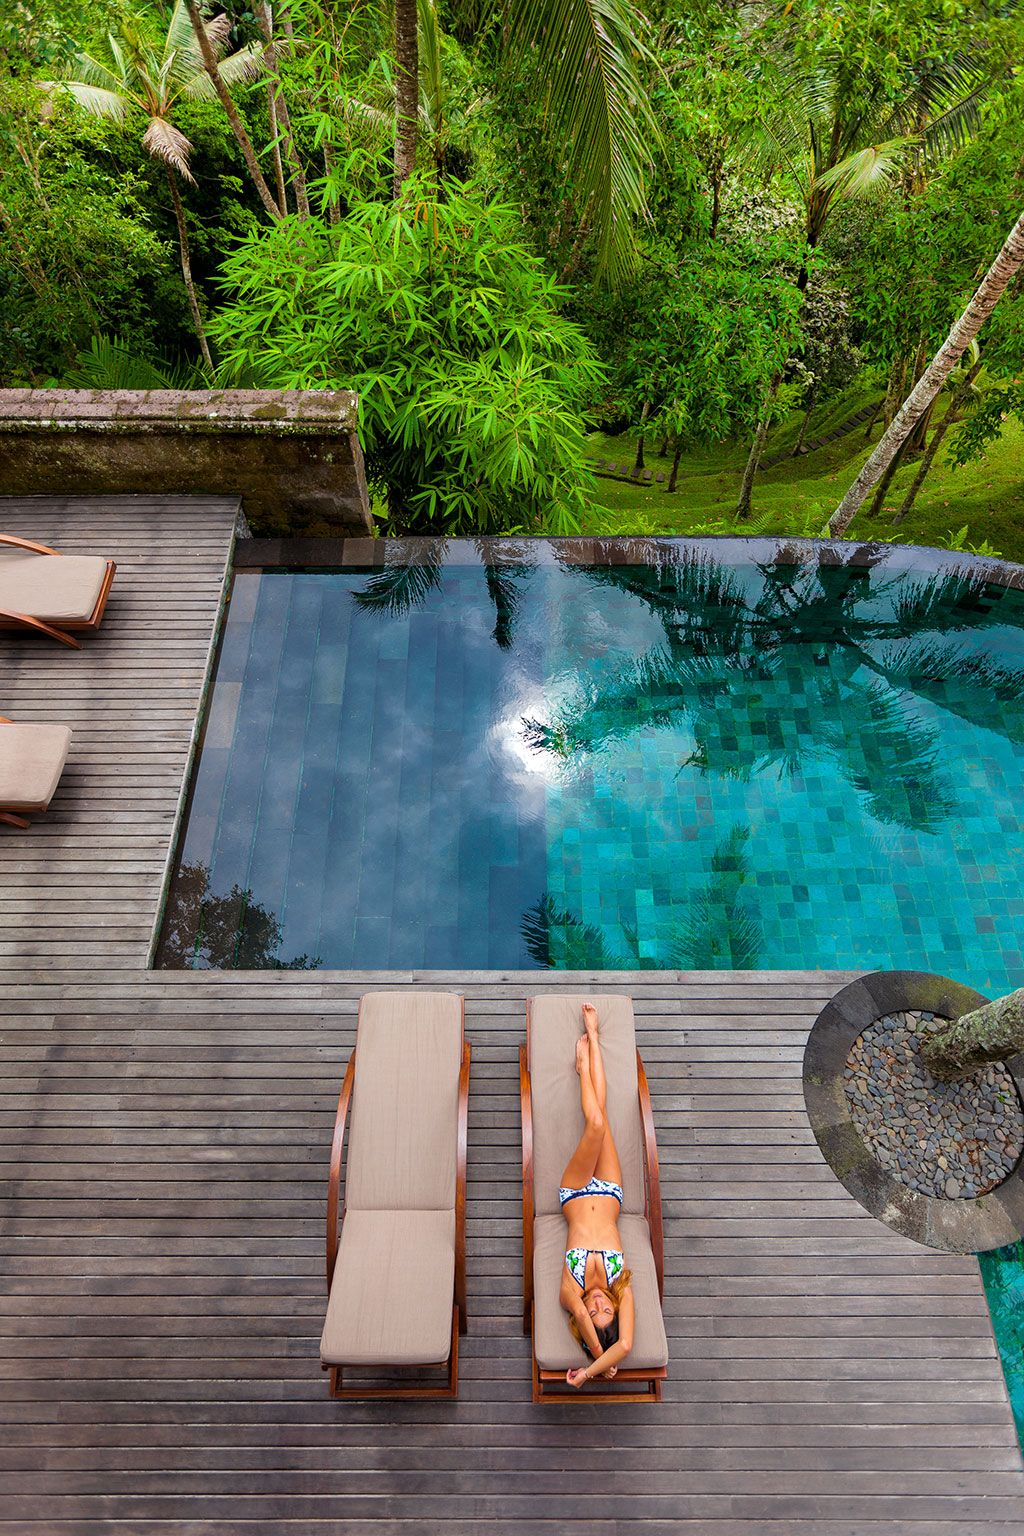 Infinity Edge Pool Designs Cool Pools Outdoor